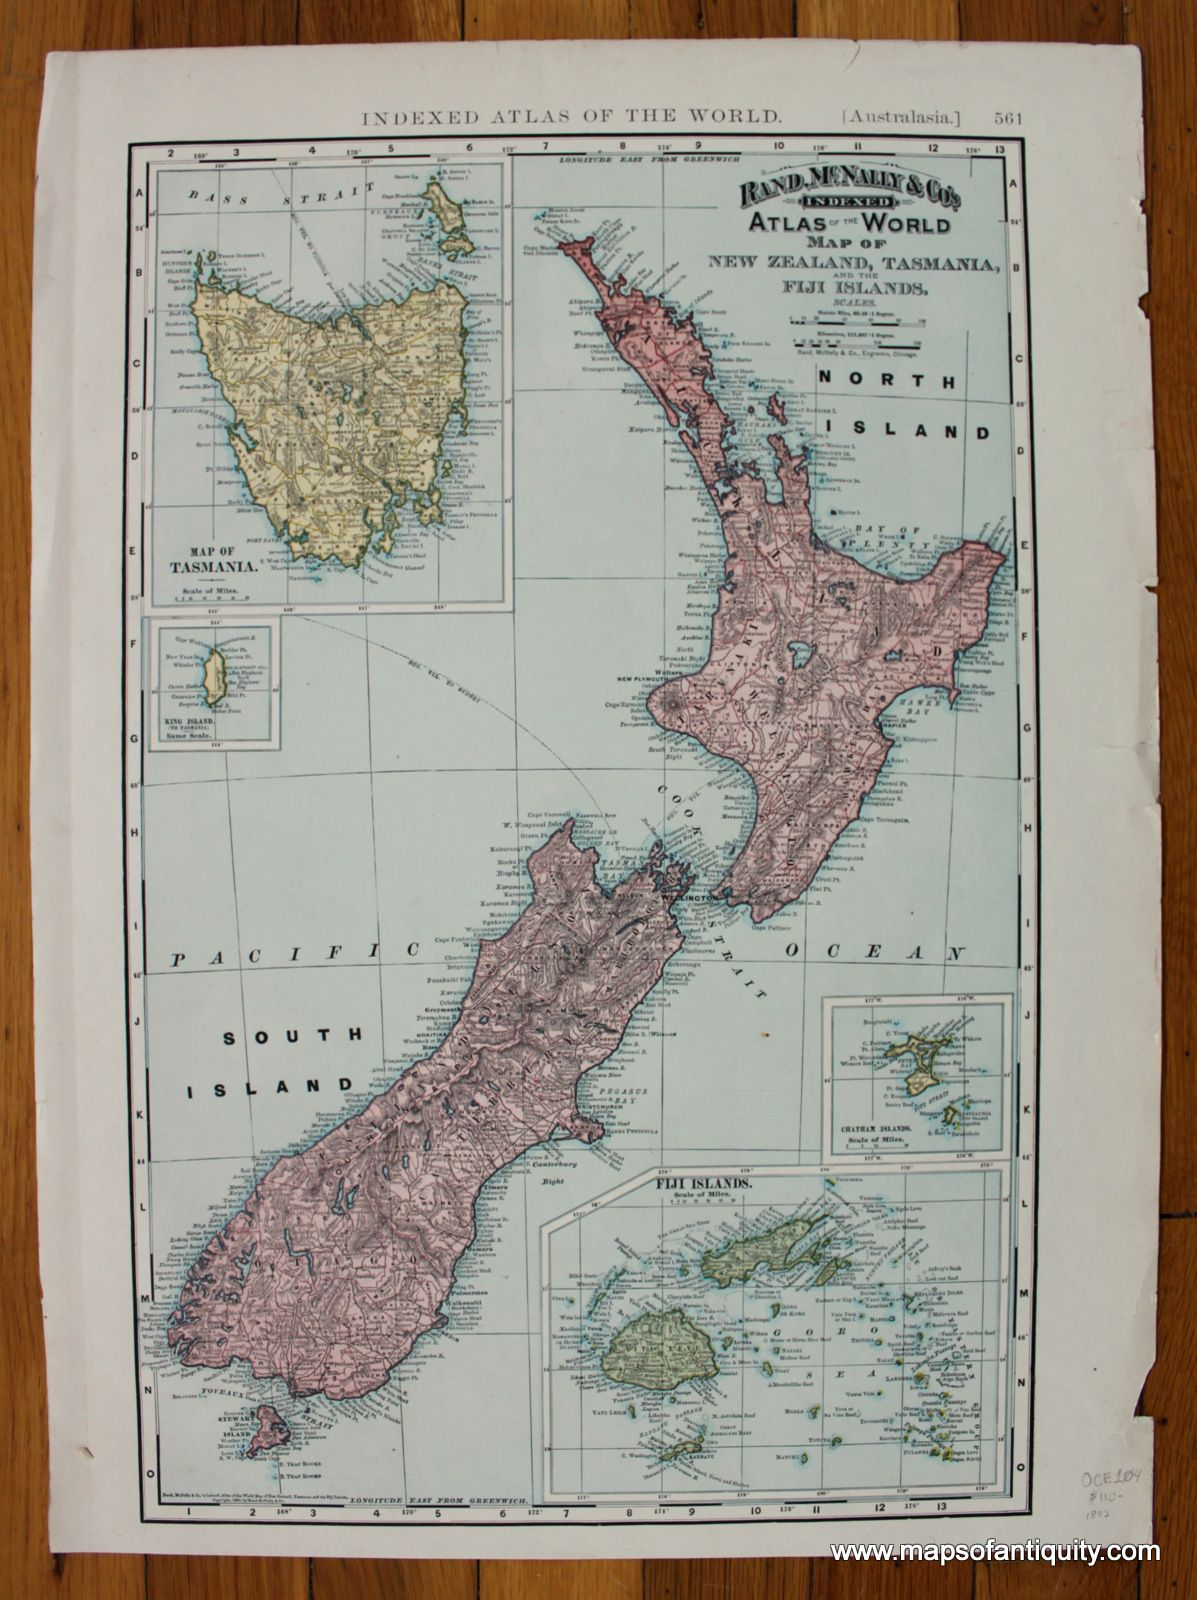 s Indexed Atlas of the World Map